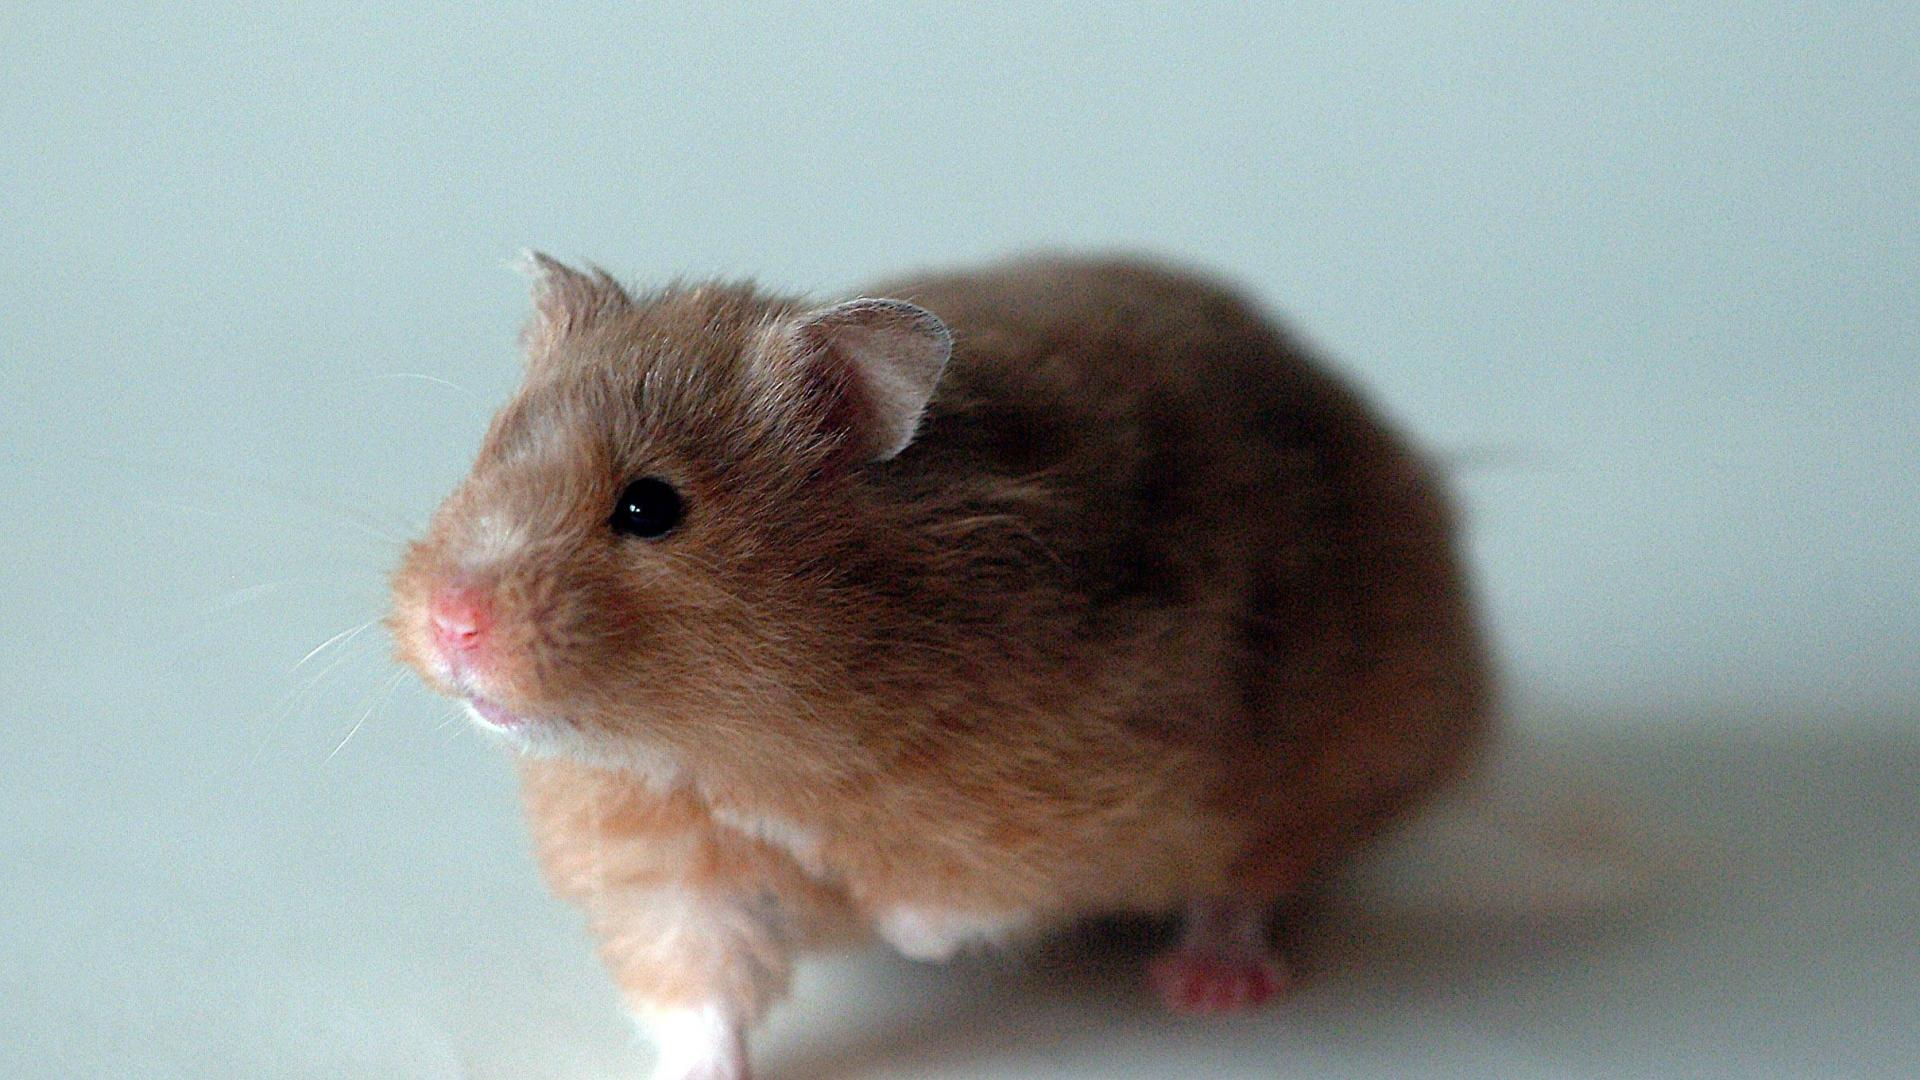 hamster wallpaper   1175   High Quality and Resolution Wallpapers 1920x1080